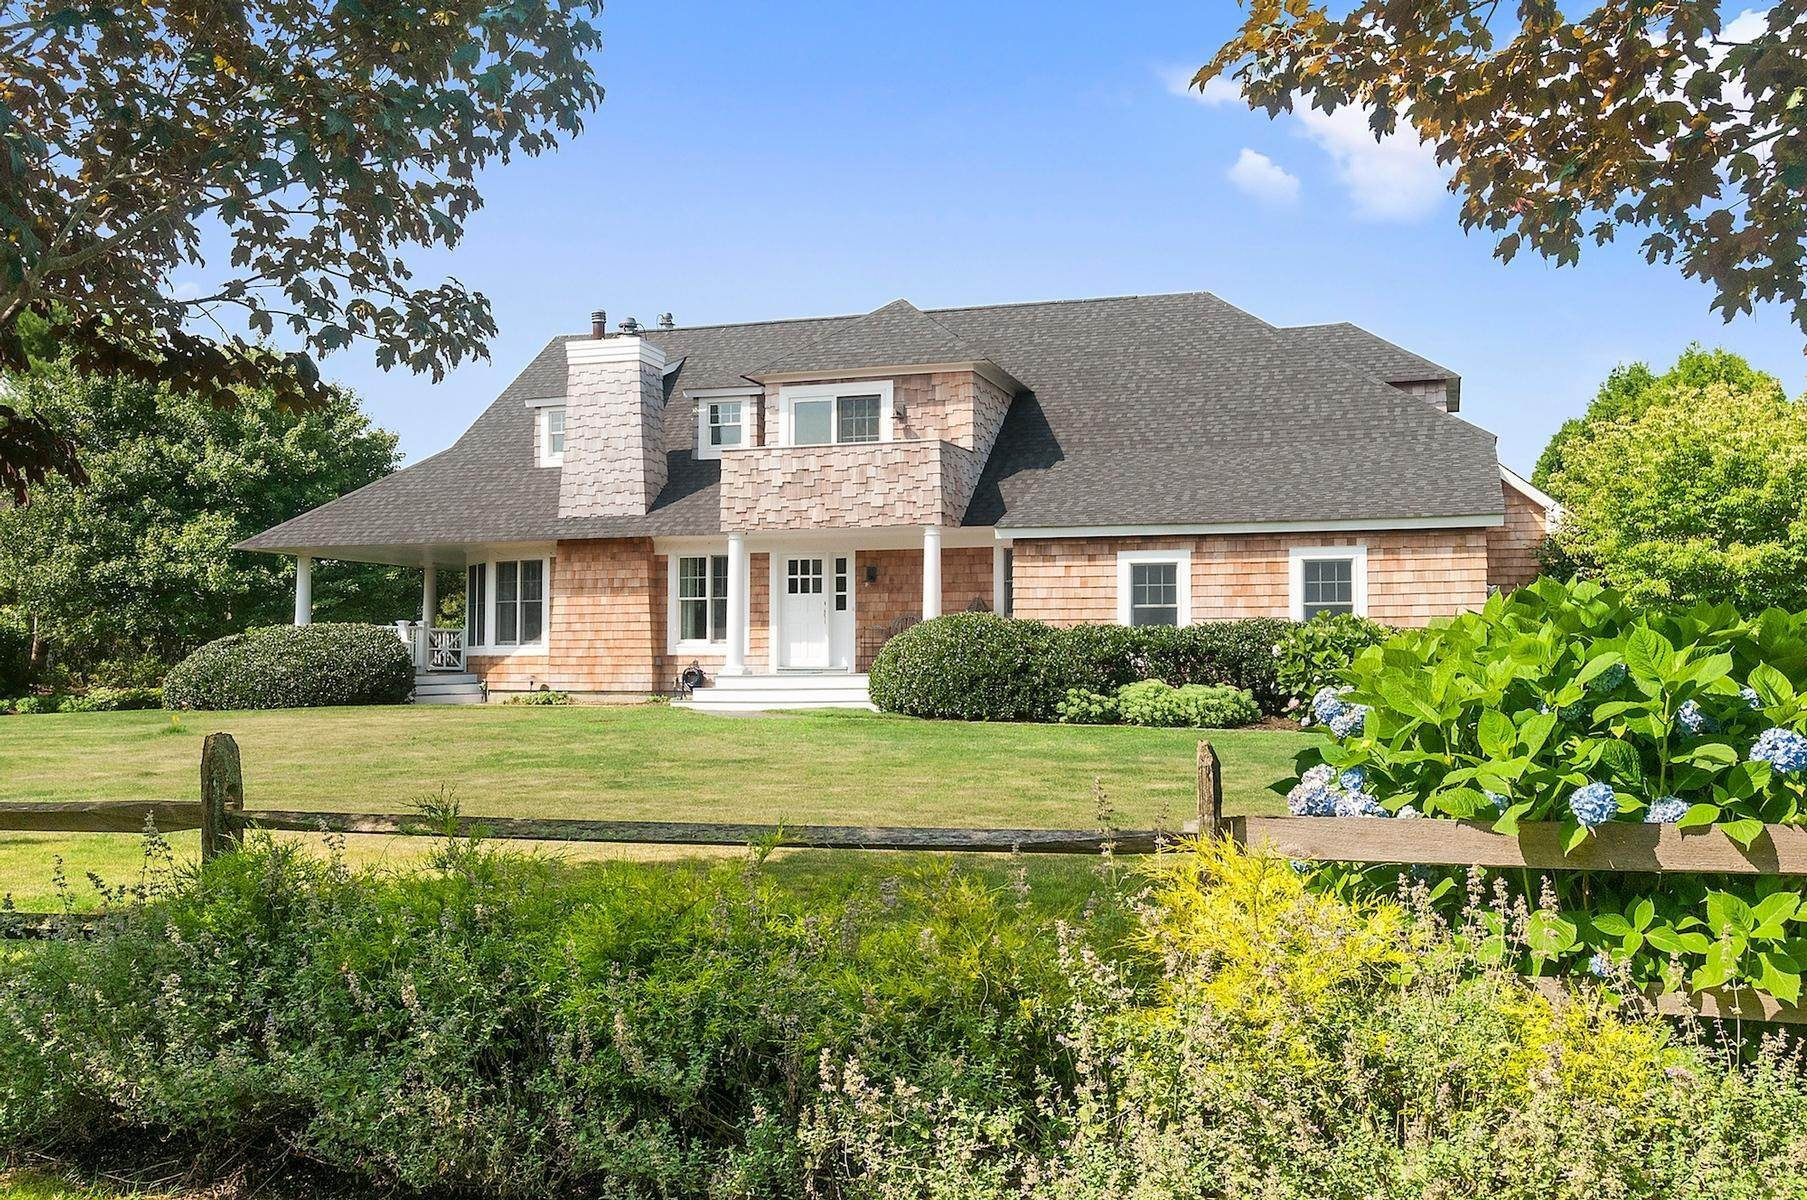 Single Family Home at Sagaponack South - Minutes To The Beach Sagaponack Village, NY 11962